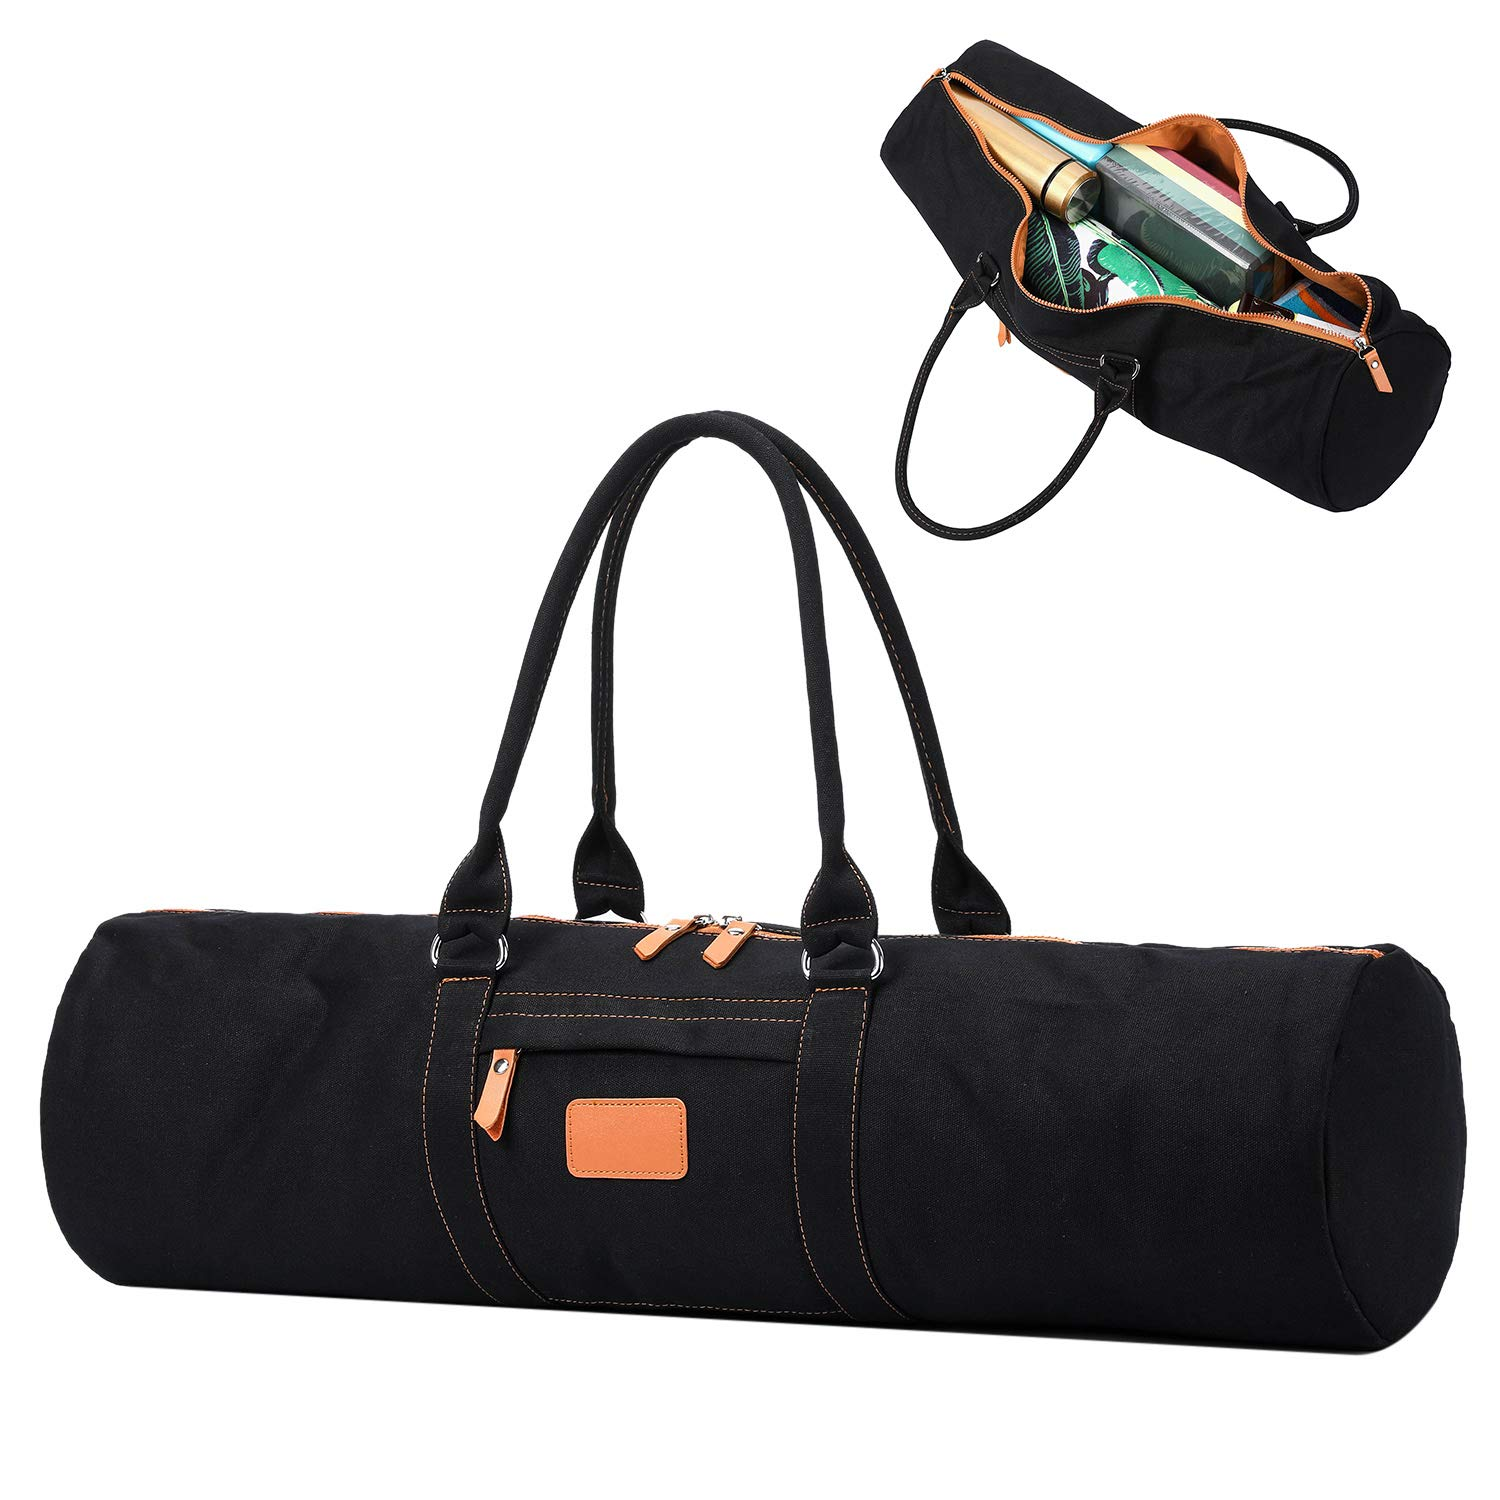 YanHao Yoga Mat Bags Canvas Yoga Mat Carrier with Zipper Pocket for Women and Men(Black)